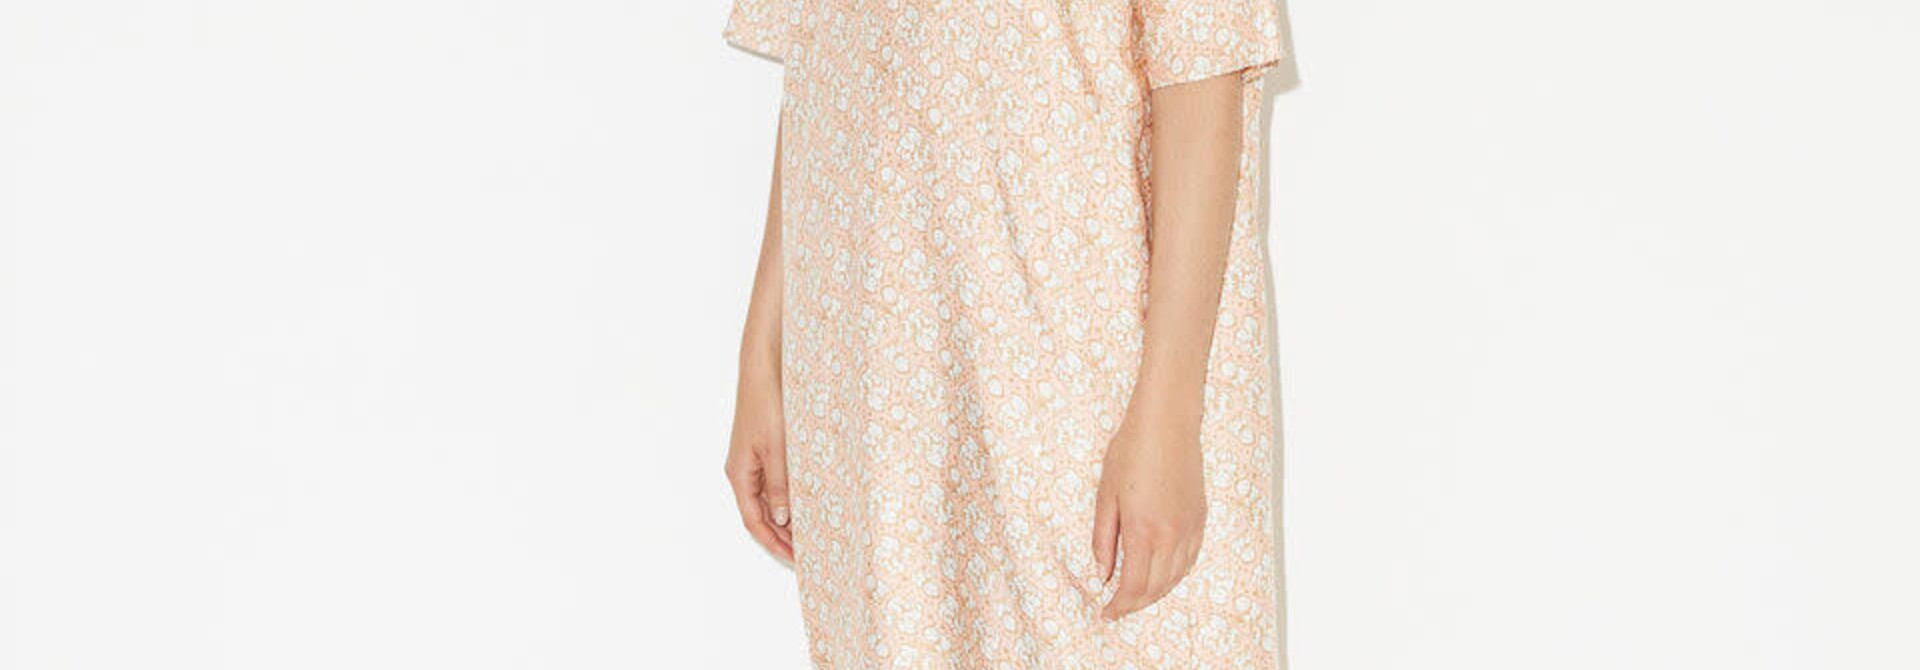 Caine dress by malene birger